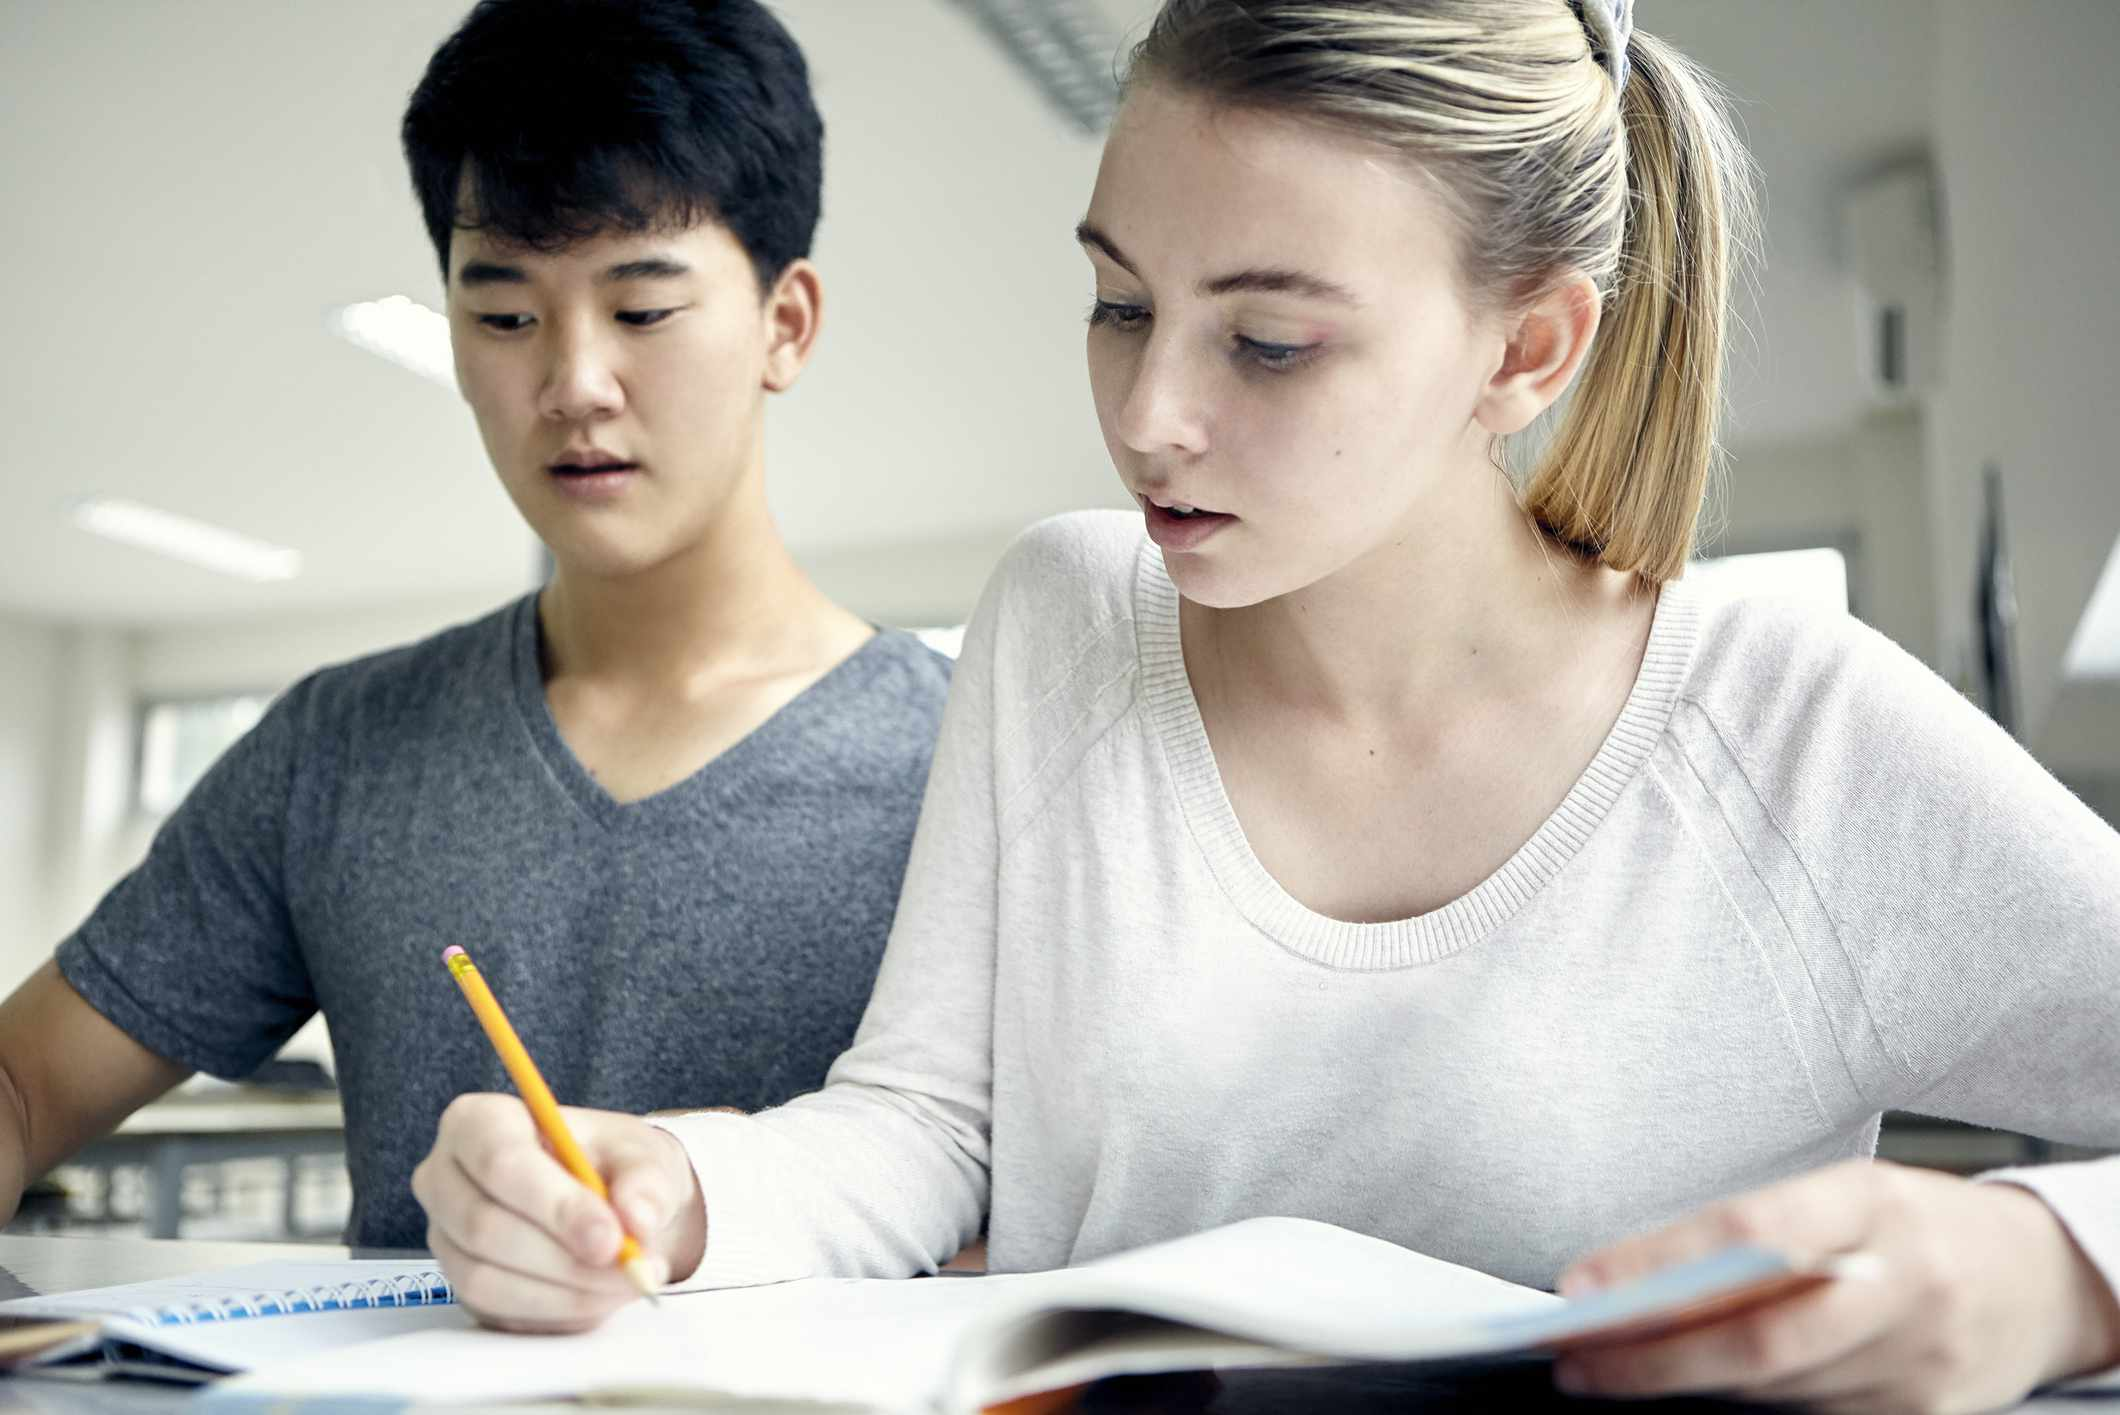 Students working on assignment at school